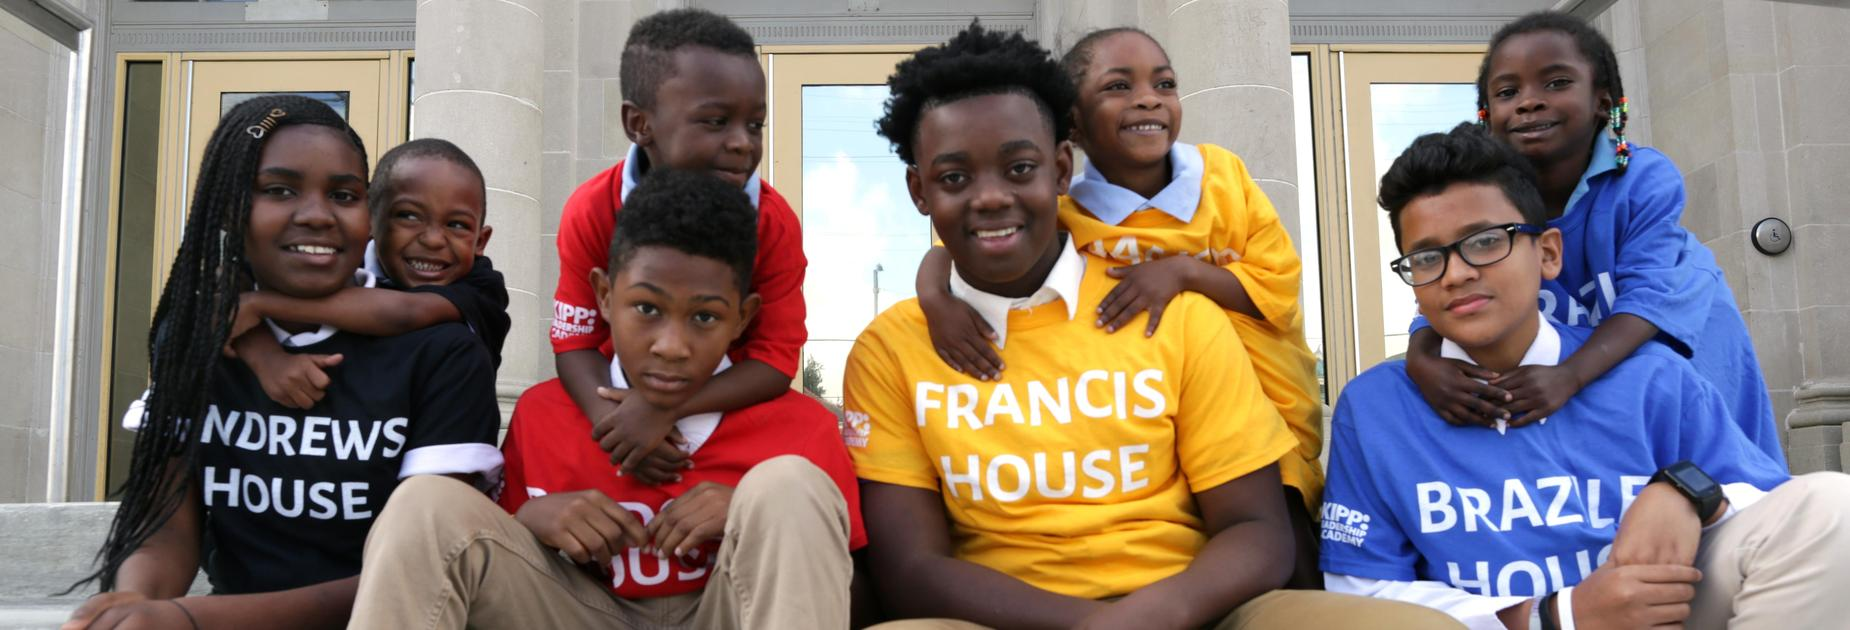 4 KLA and 4 KLP students posing on the steps of the school wearing house T-shirts